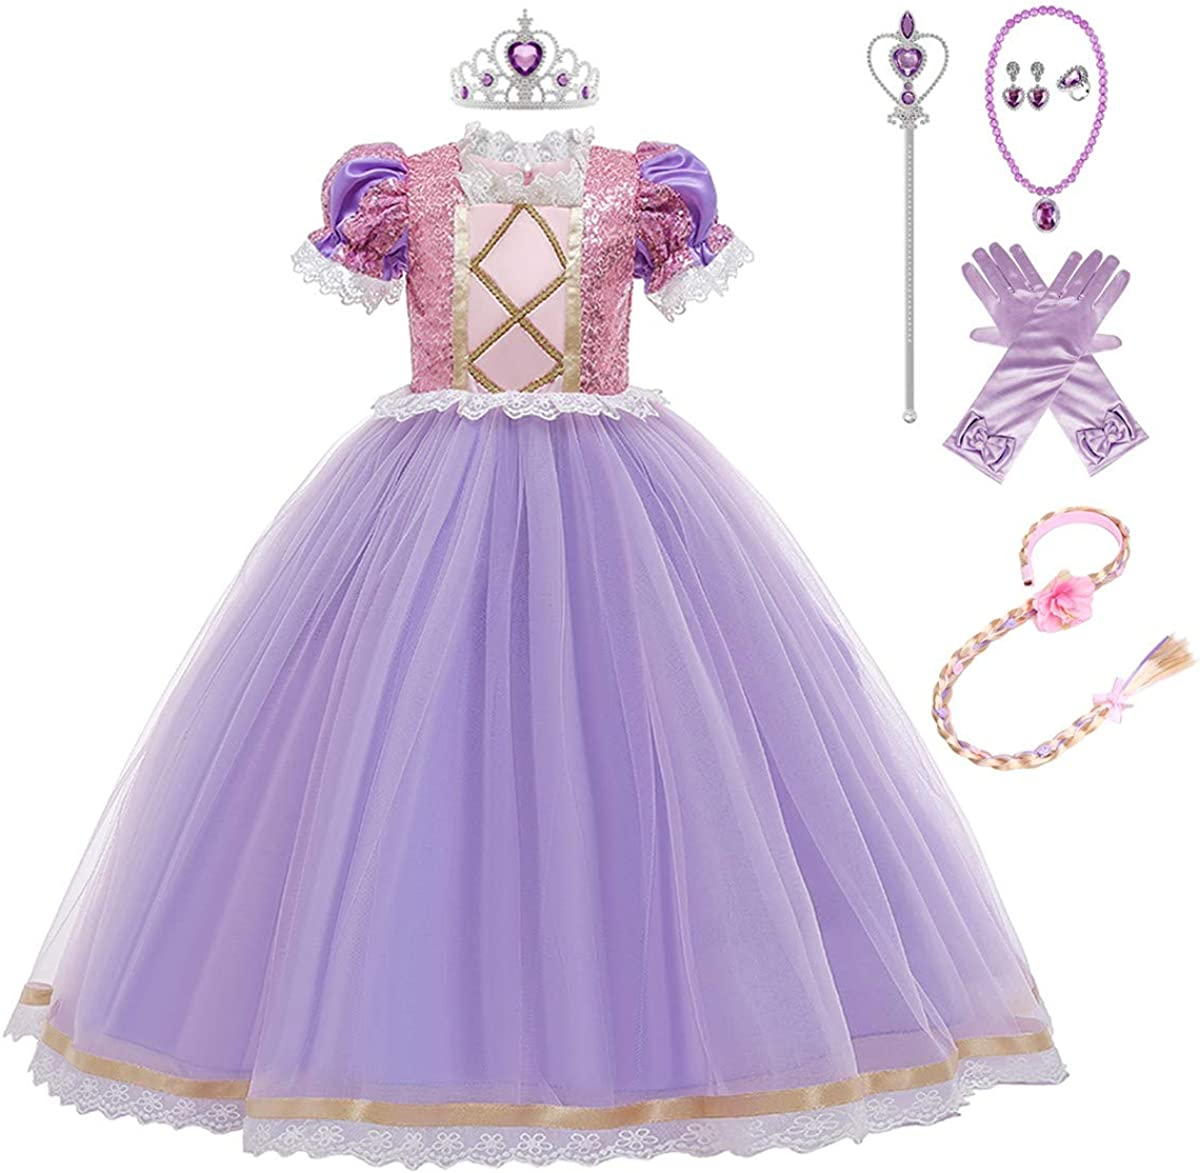 Girls Princess Dress Costumes Halloween Birthday Party with Cosplay Dresses